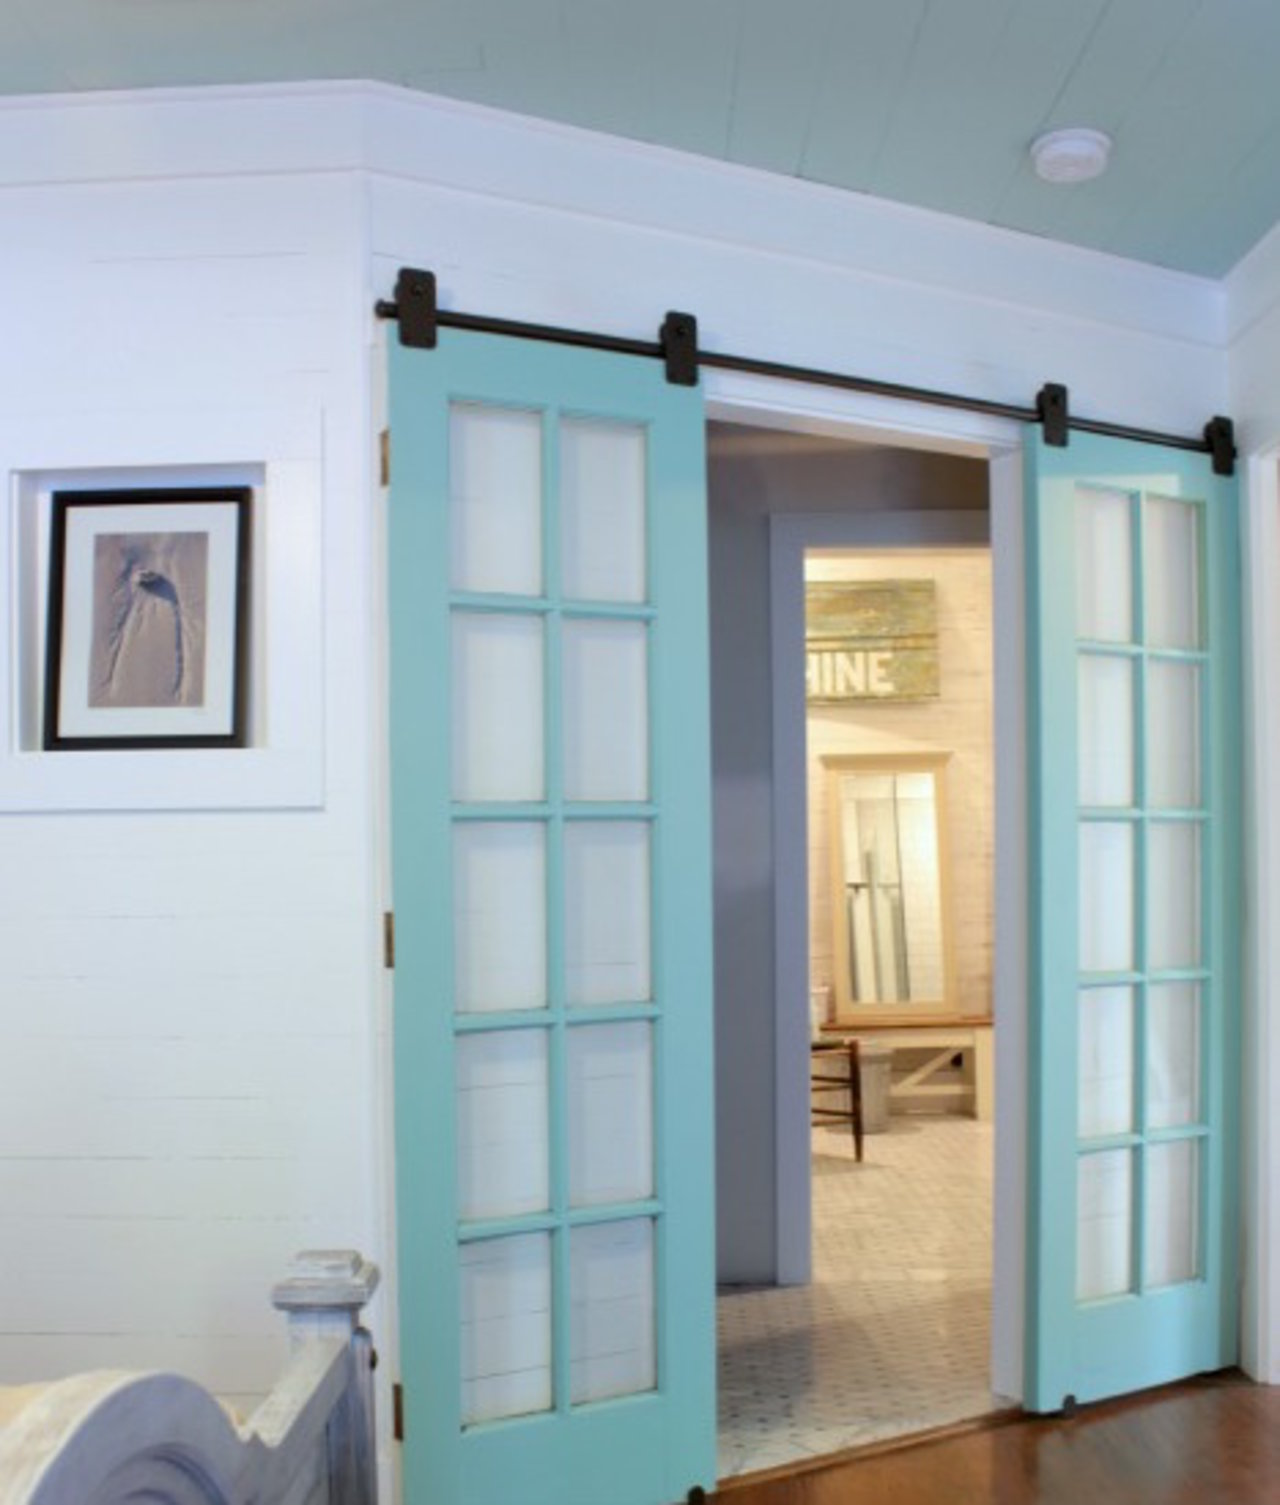 Proof Barn Doors Totally Work as Home Decor & Proof Barn Doors Totally Work as Home Decor - The Accent™